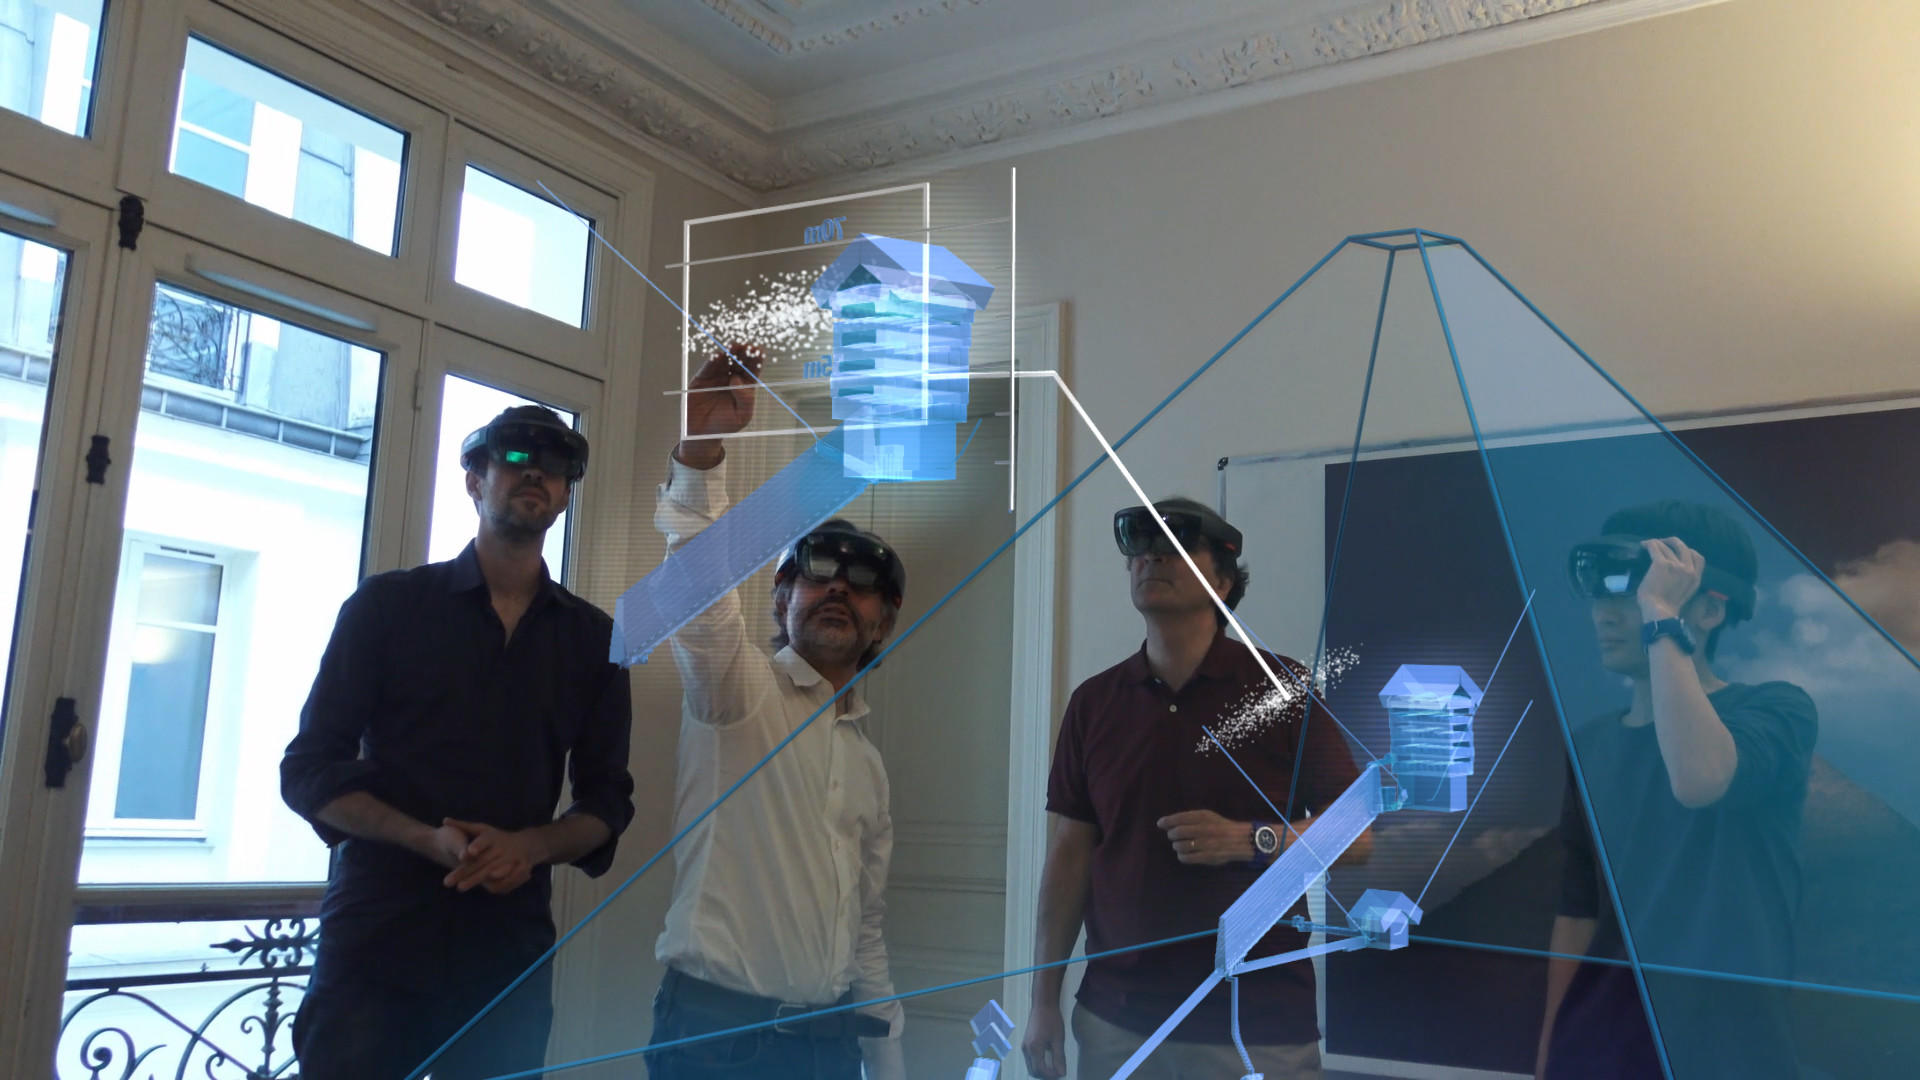 Members of the research team use augmented reality to visualize the pyramid's void.